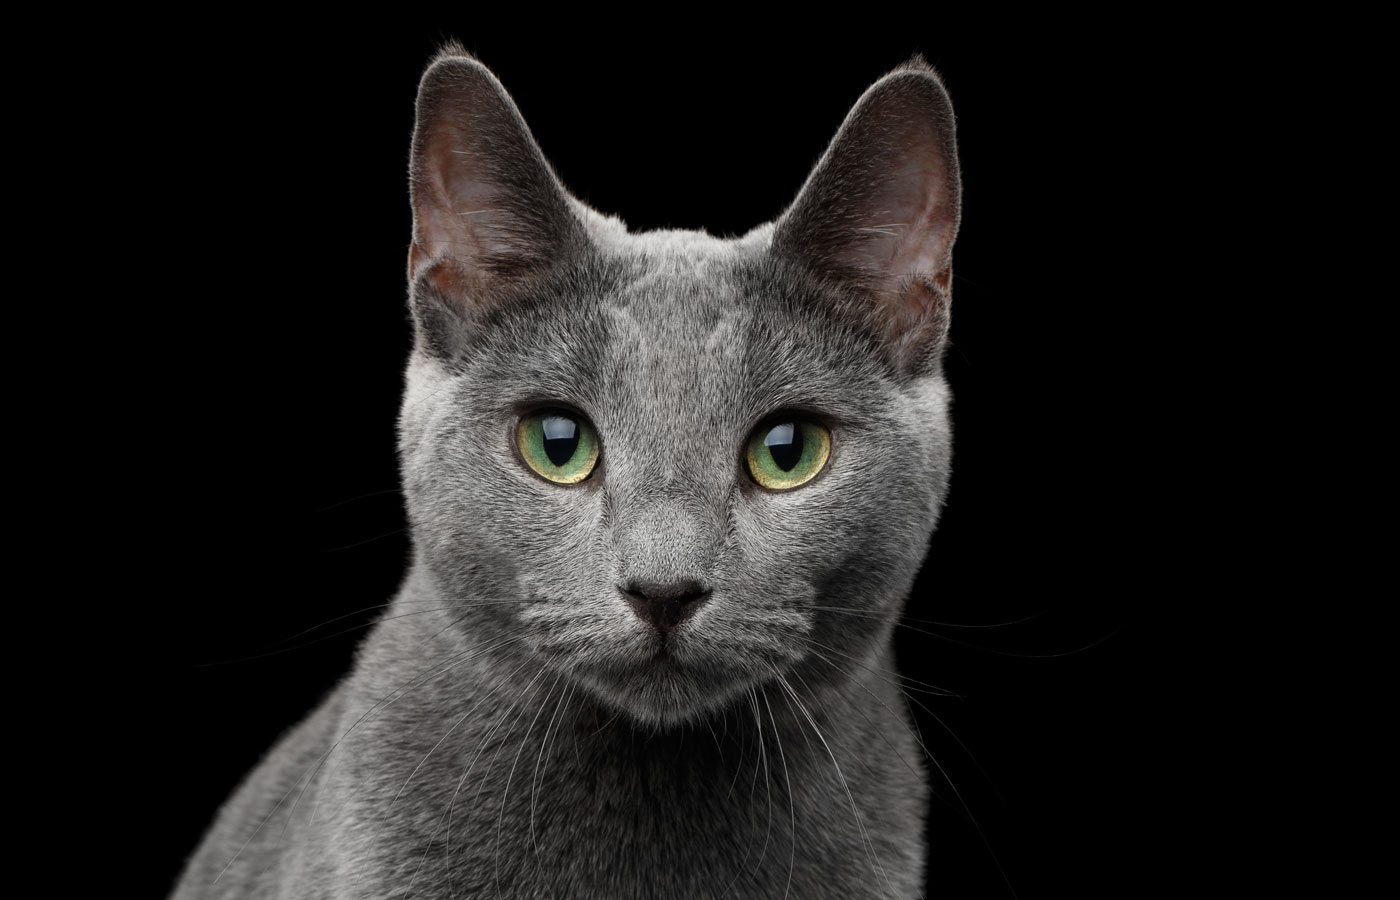 Close-up portrait of Russian blue cat with amazing green eyes and gray silver fur looking in camera on isolated black background